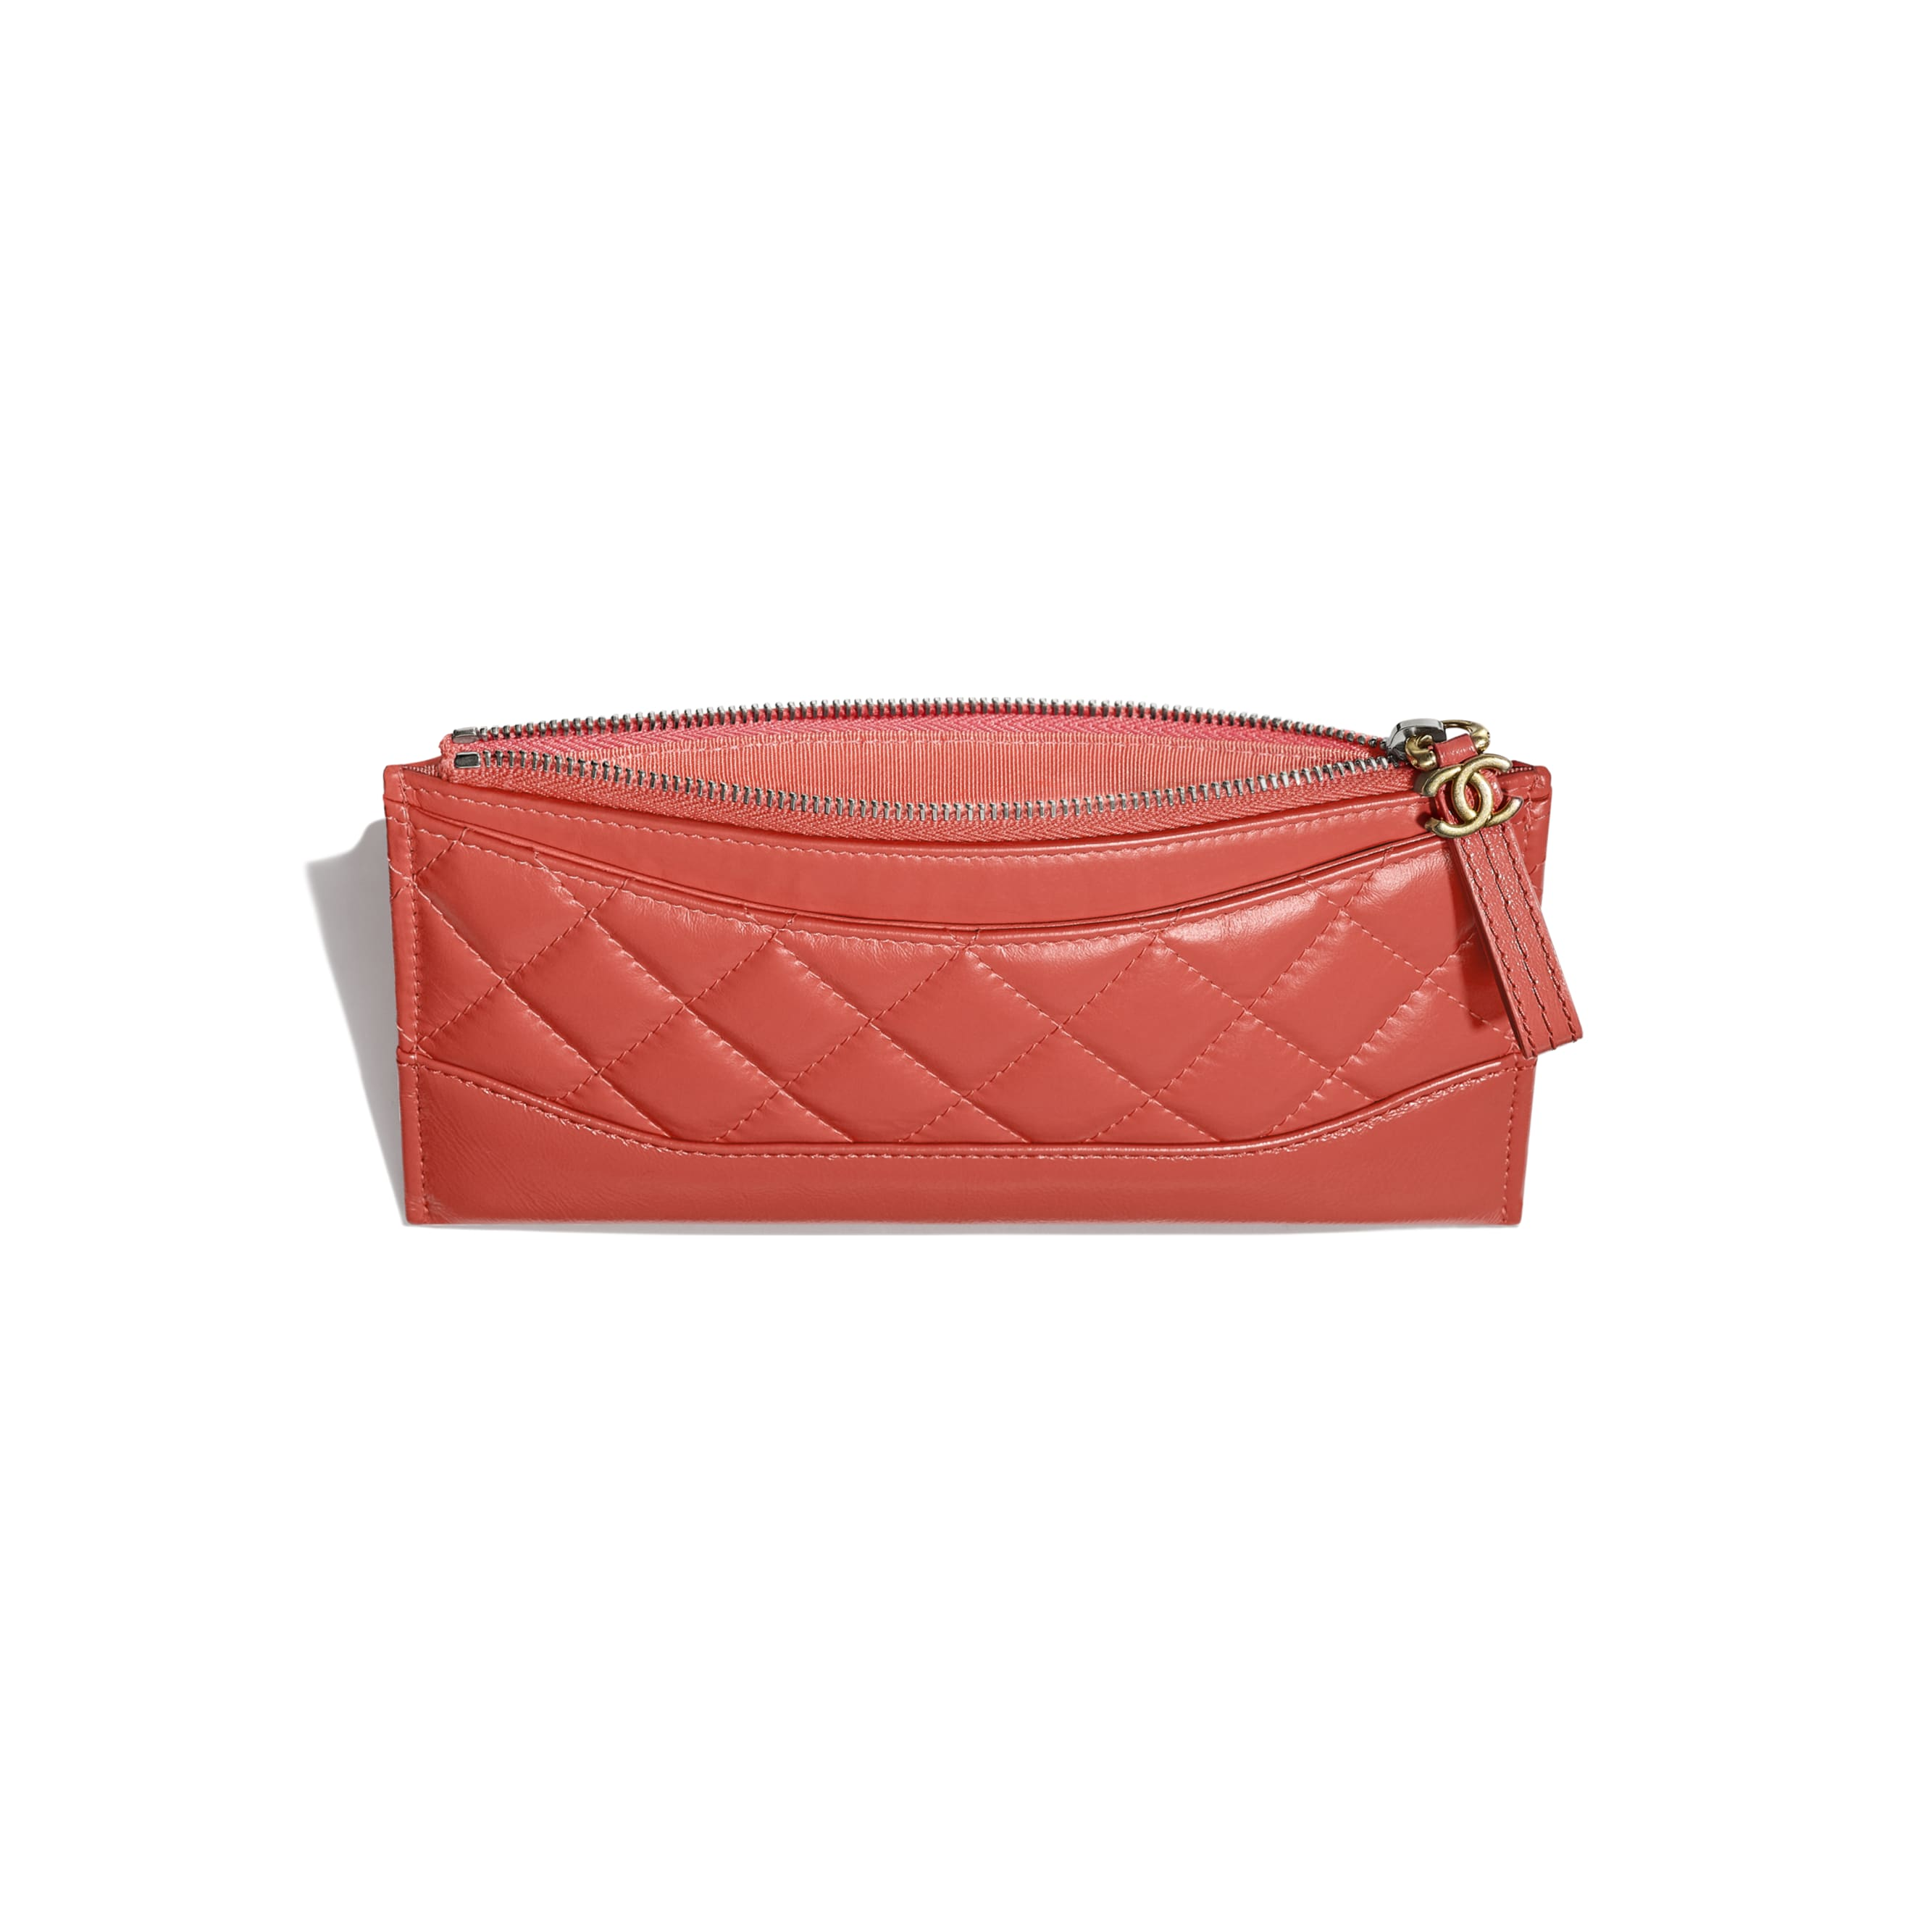 Pouch - Coral - Aged Calfskin, Smooth Calfskin, Gold-Tone, Silver-Tone & Ruthenium-Finish Metal - CHANEL - Other view - see standard sized version